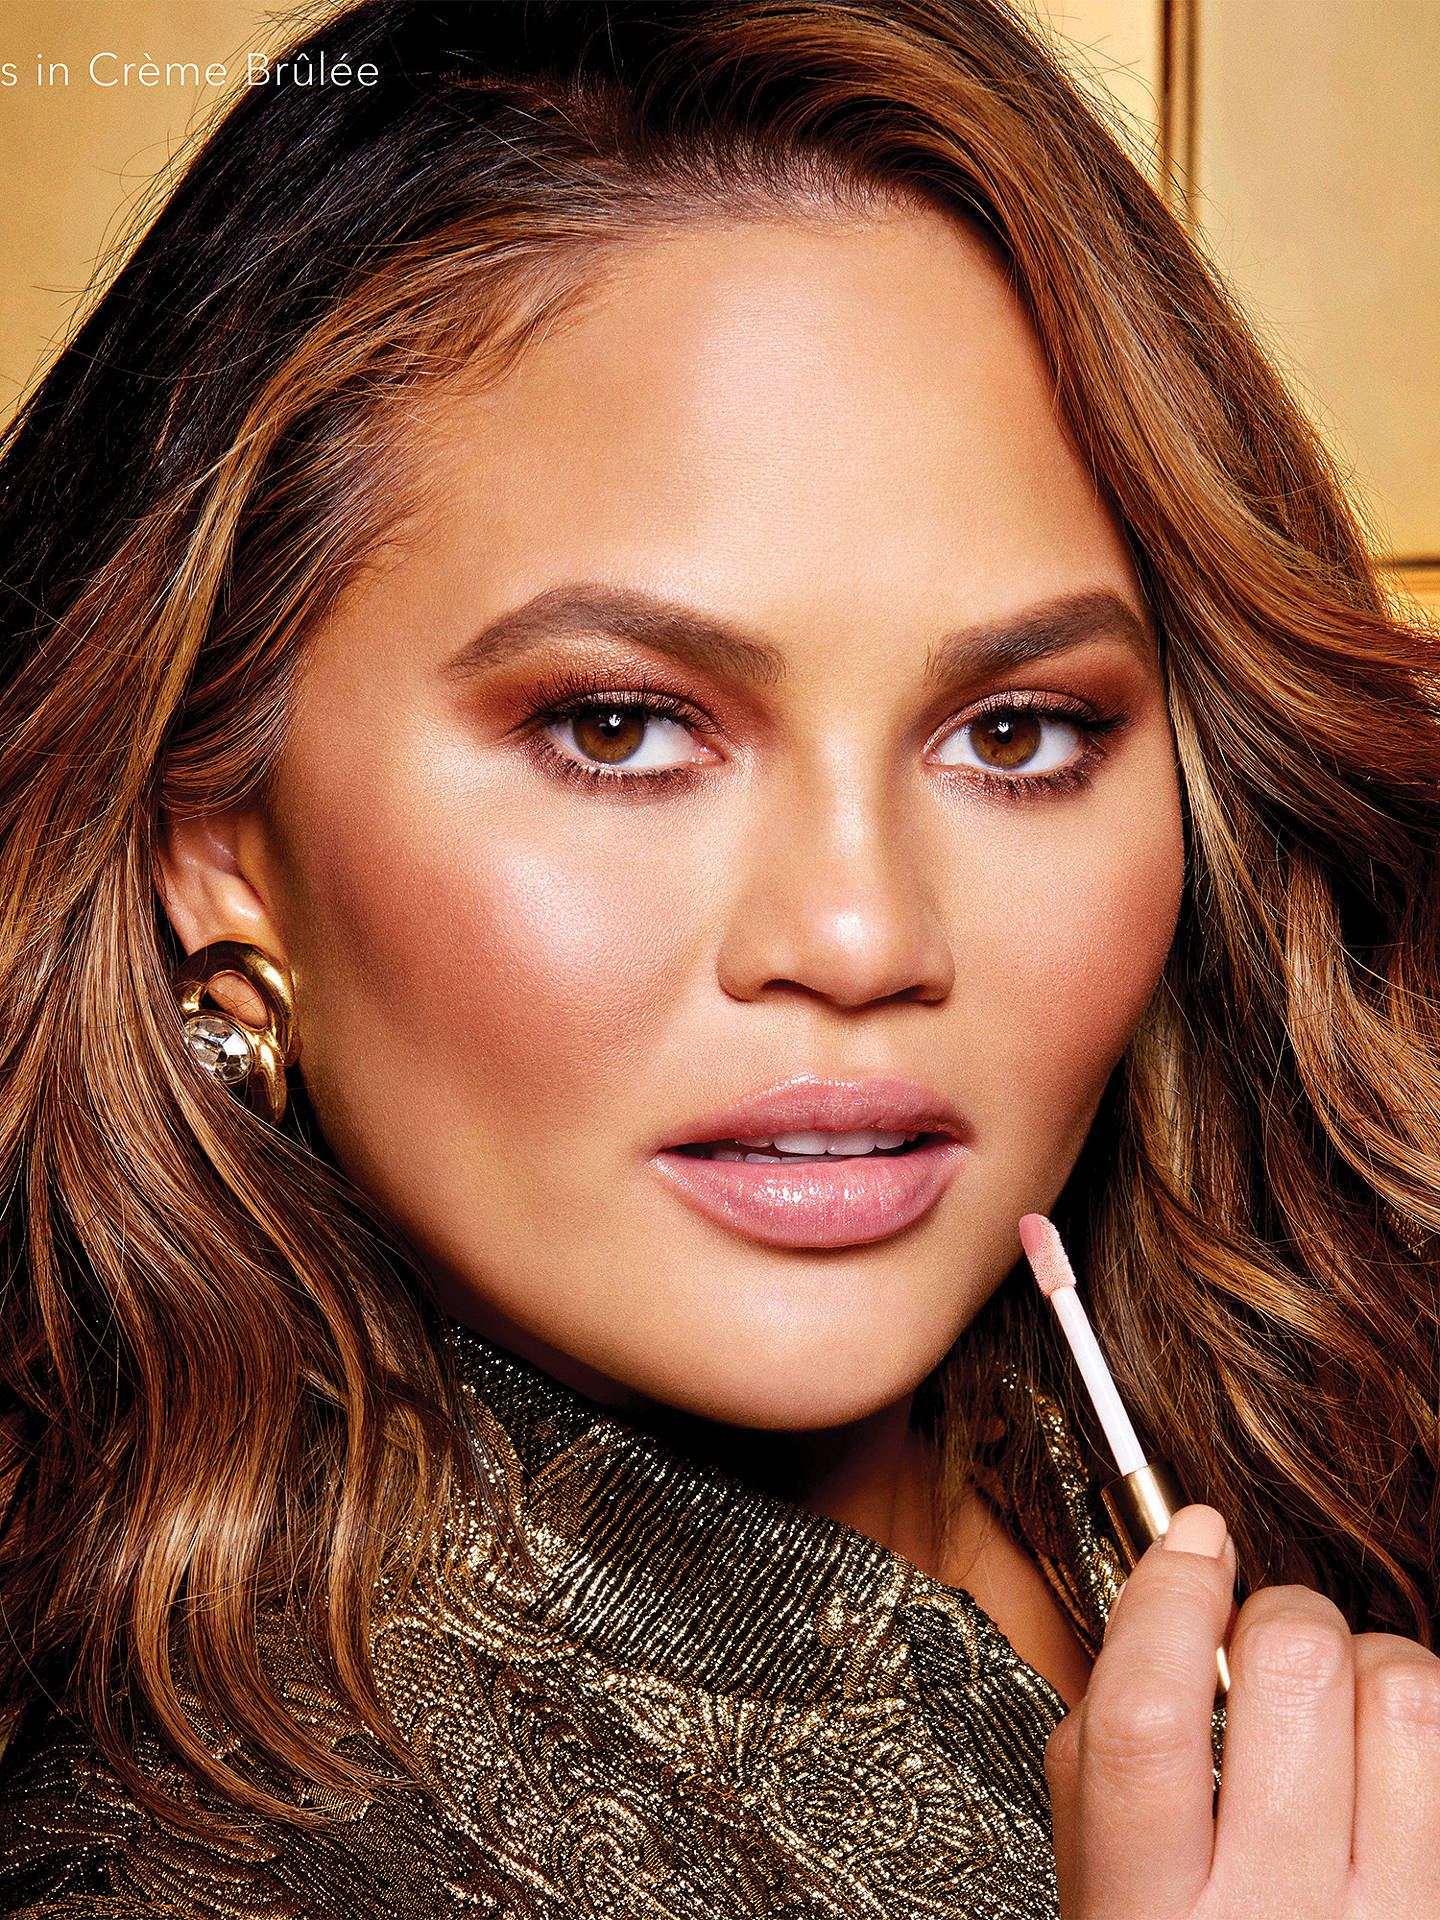 BuyBECCA x Chrissy Teigen Lip Icing Glow Gloss Kit Online at johnlewis.com